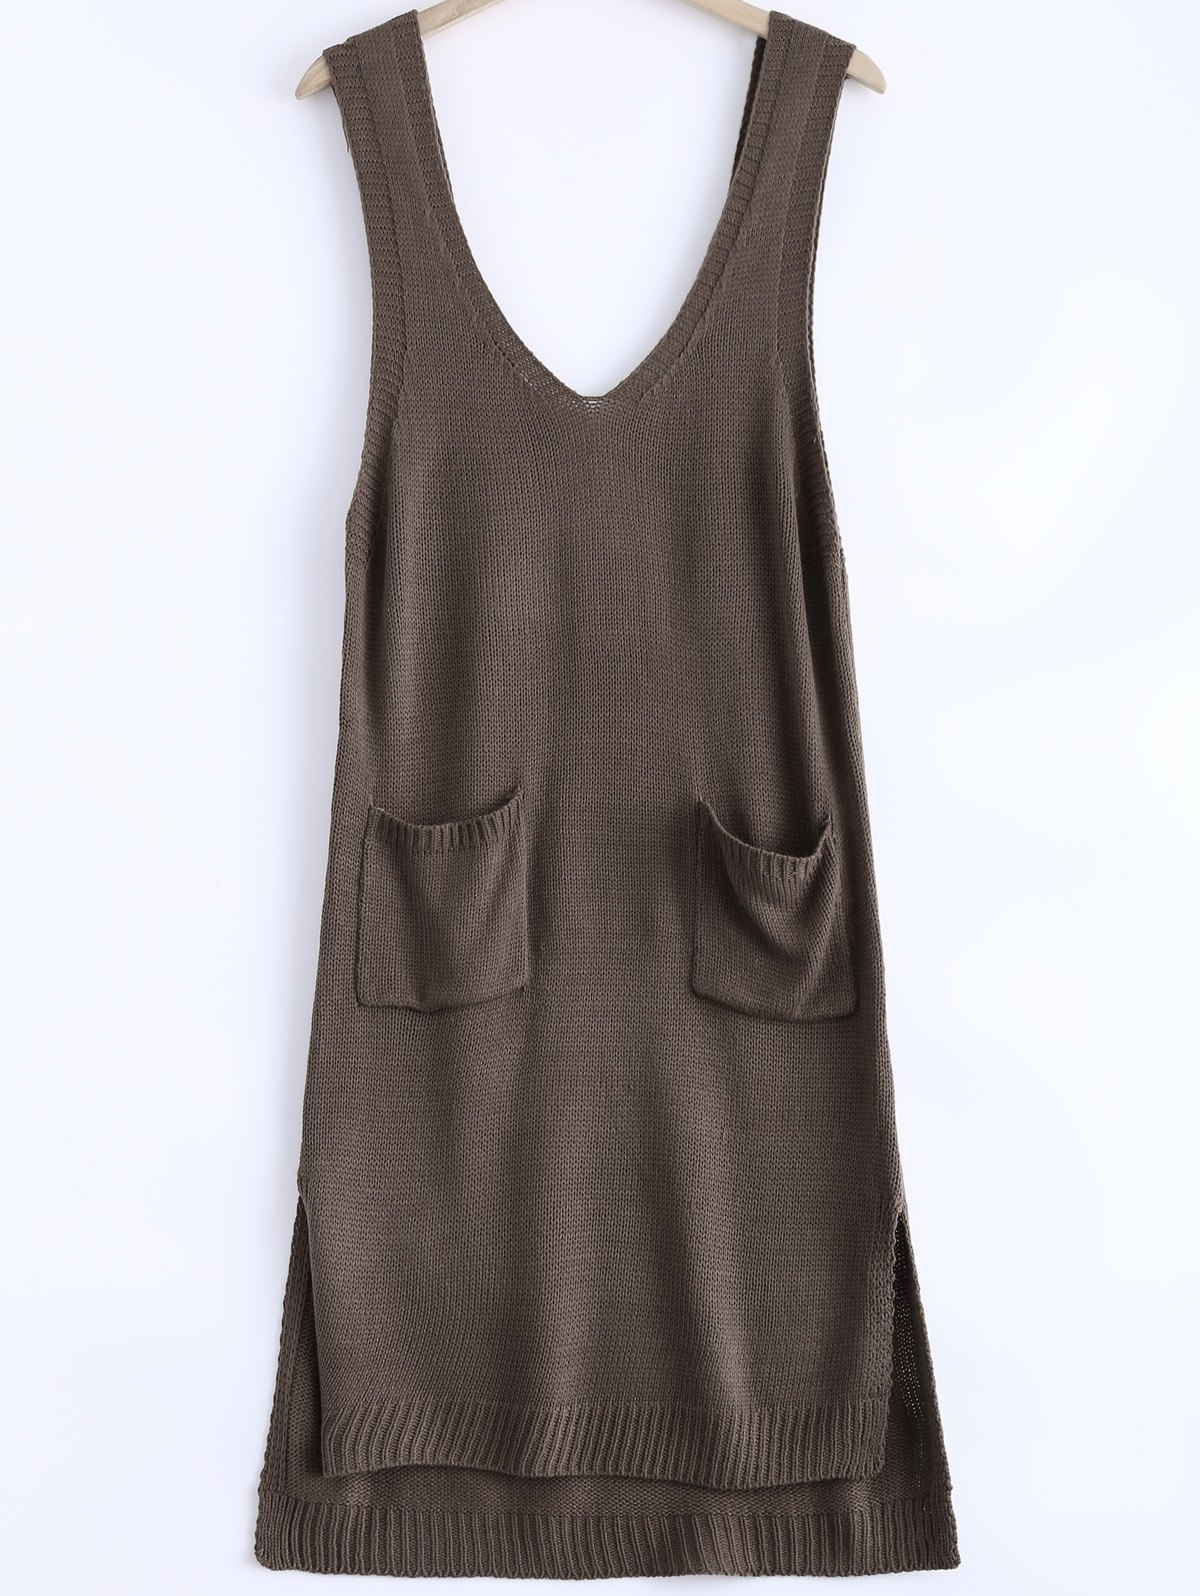 Casual Sleeveless High Low Knitted Dress For Women - COFFEE ONE SIZE